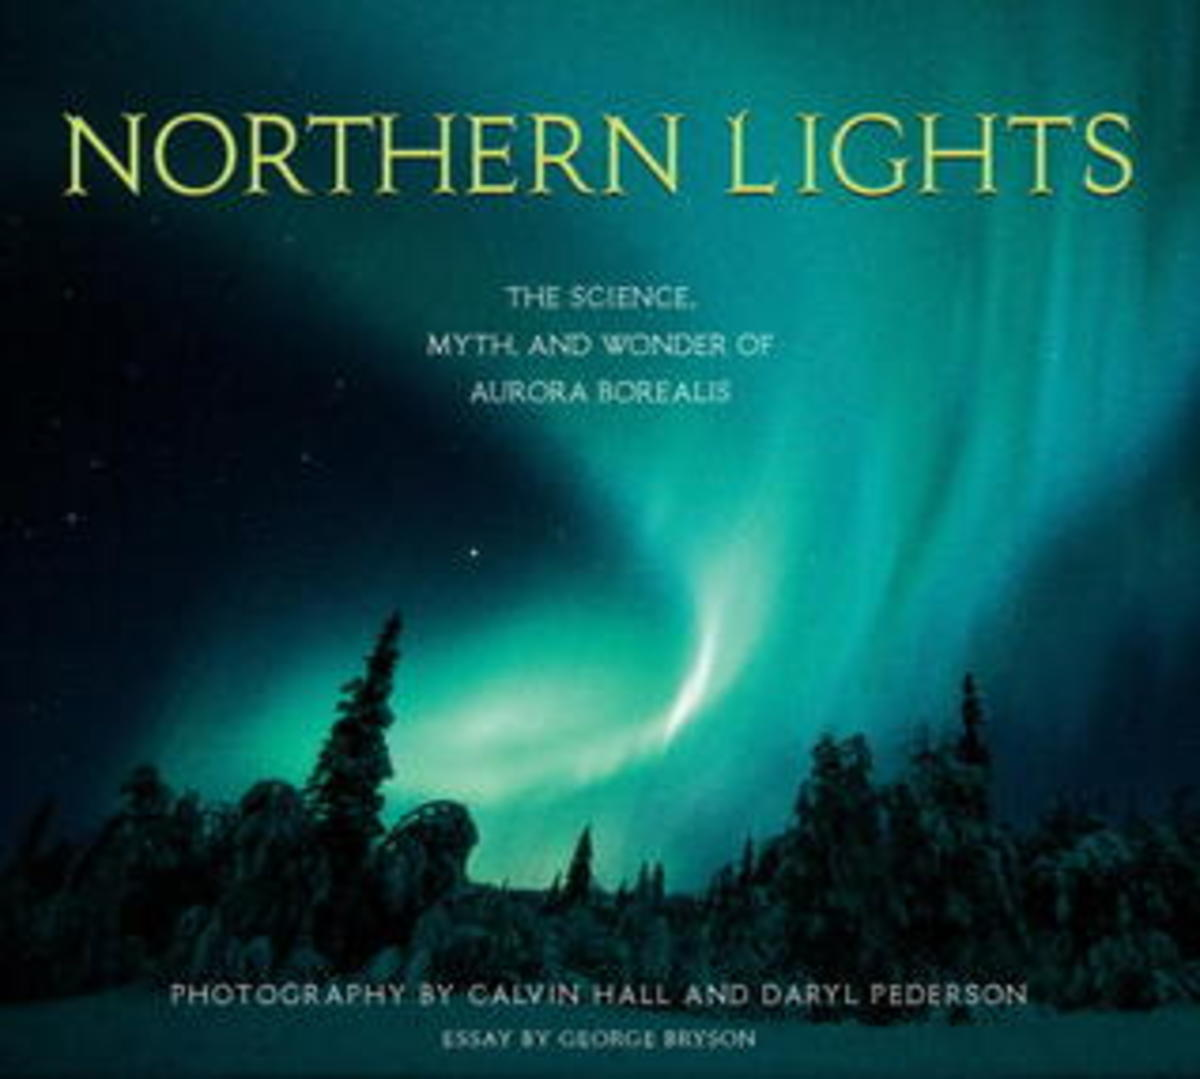 Northern Lights: The Science, Myth, and Wonder of Aurora Borealis by Calvin Hall - Image is from goodreads.com